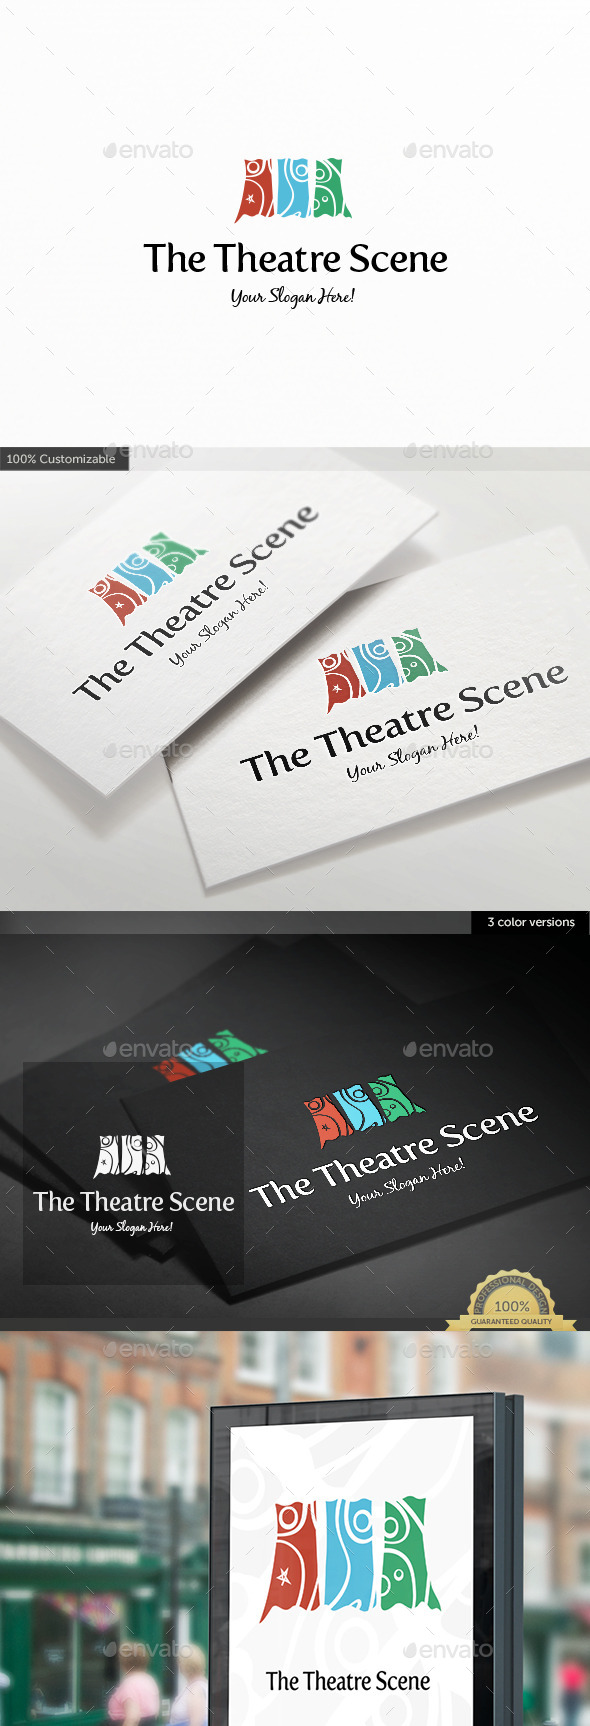 GraphicRiver Theatre Scene Logo Template 11329904